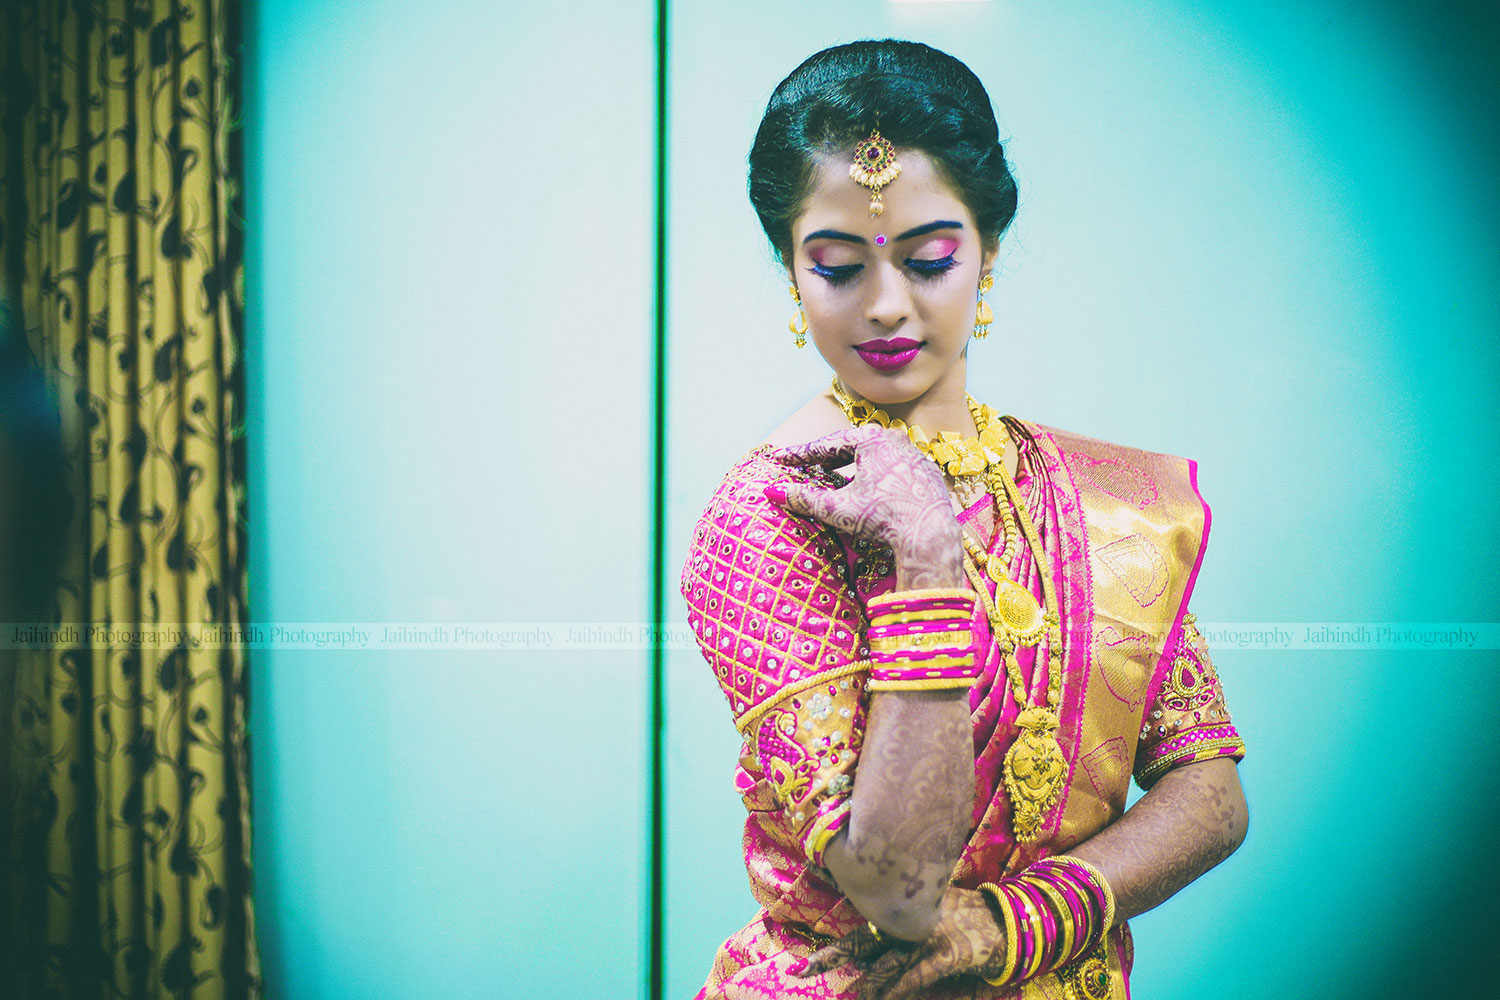 Hd Makeup In Madurai, Bridal Makeup Madurai, Rachna's Beauty Studio Madurai, Tamil Nadu, Bridal Makeup In Madurai , Tamil Nadu, Madurai Makeup